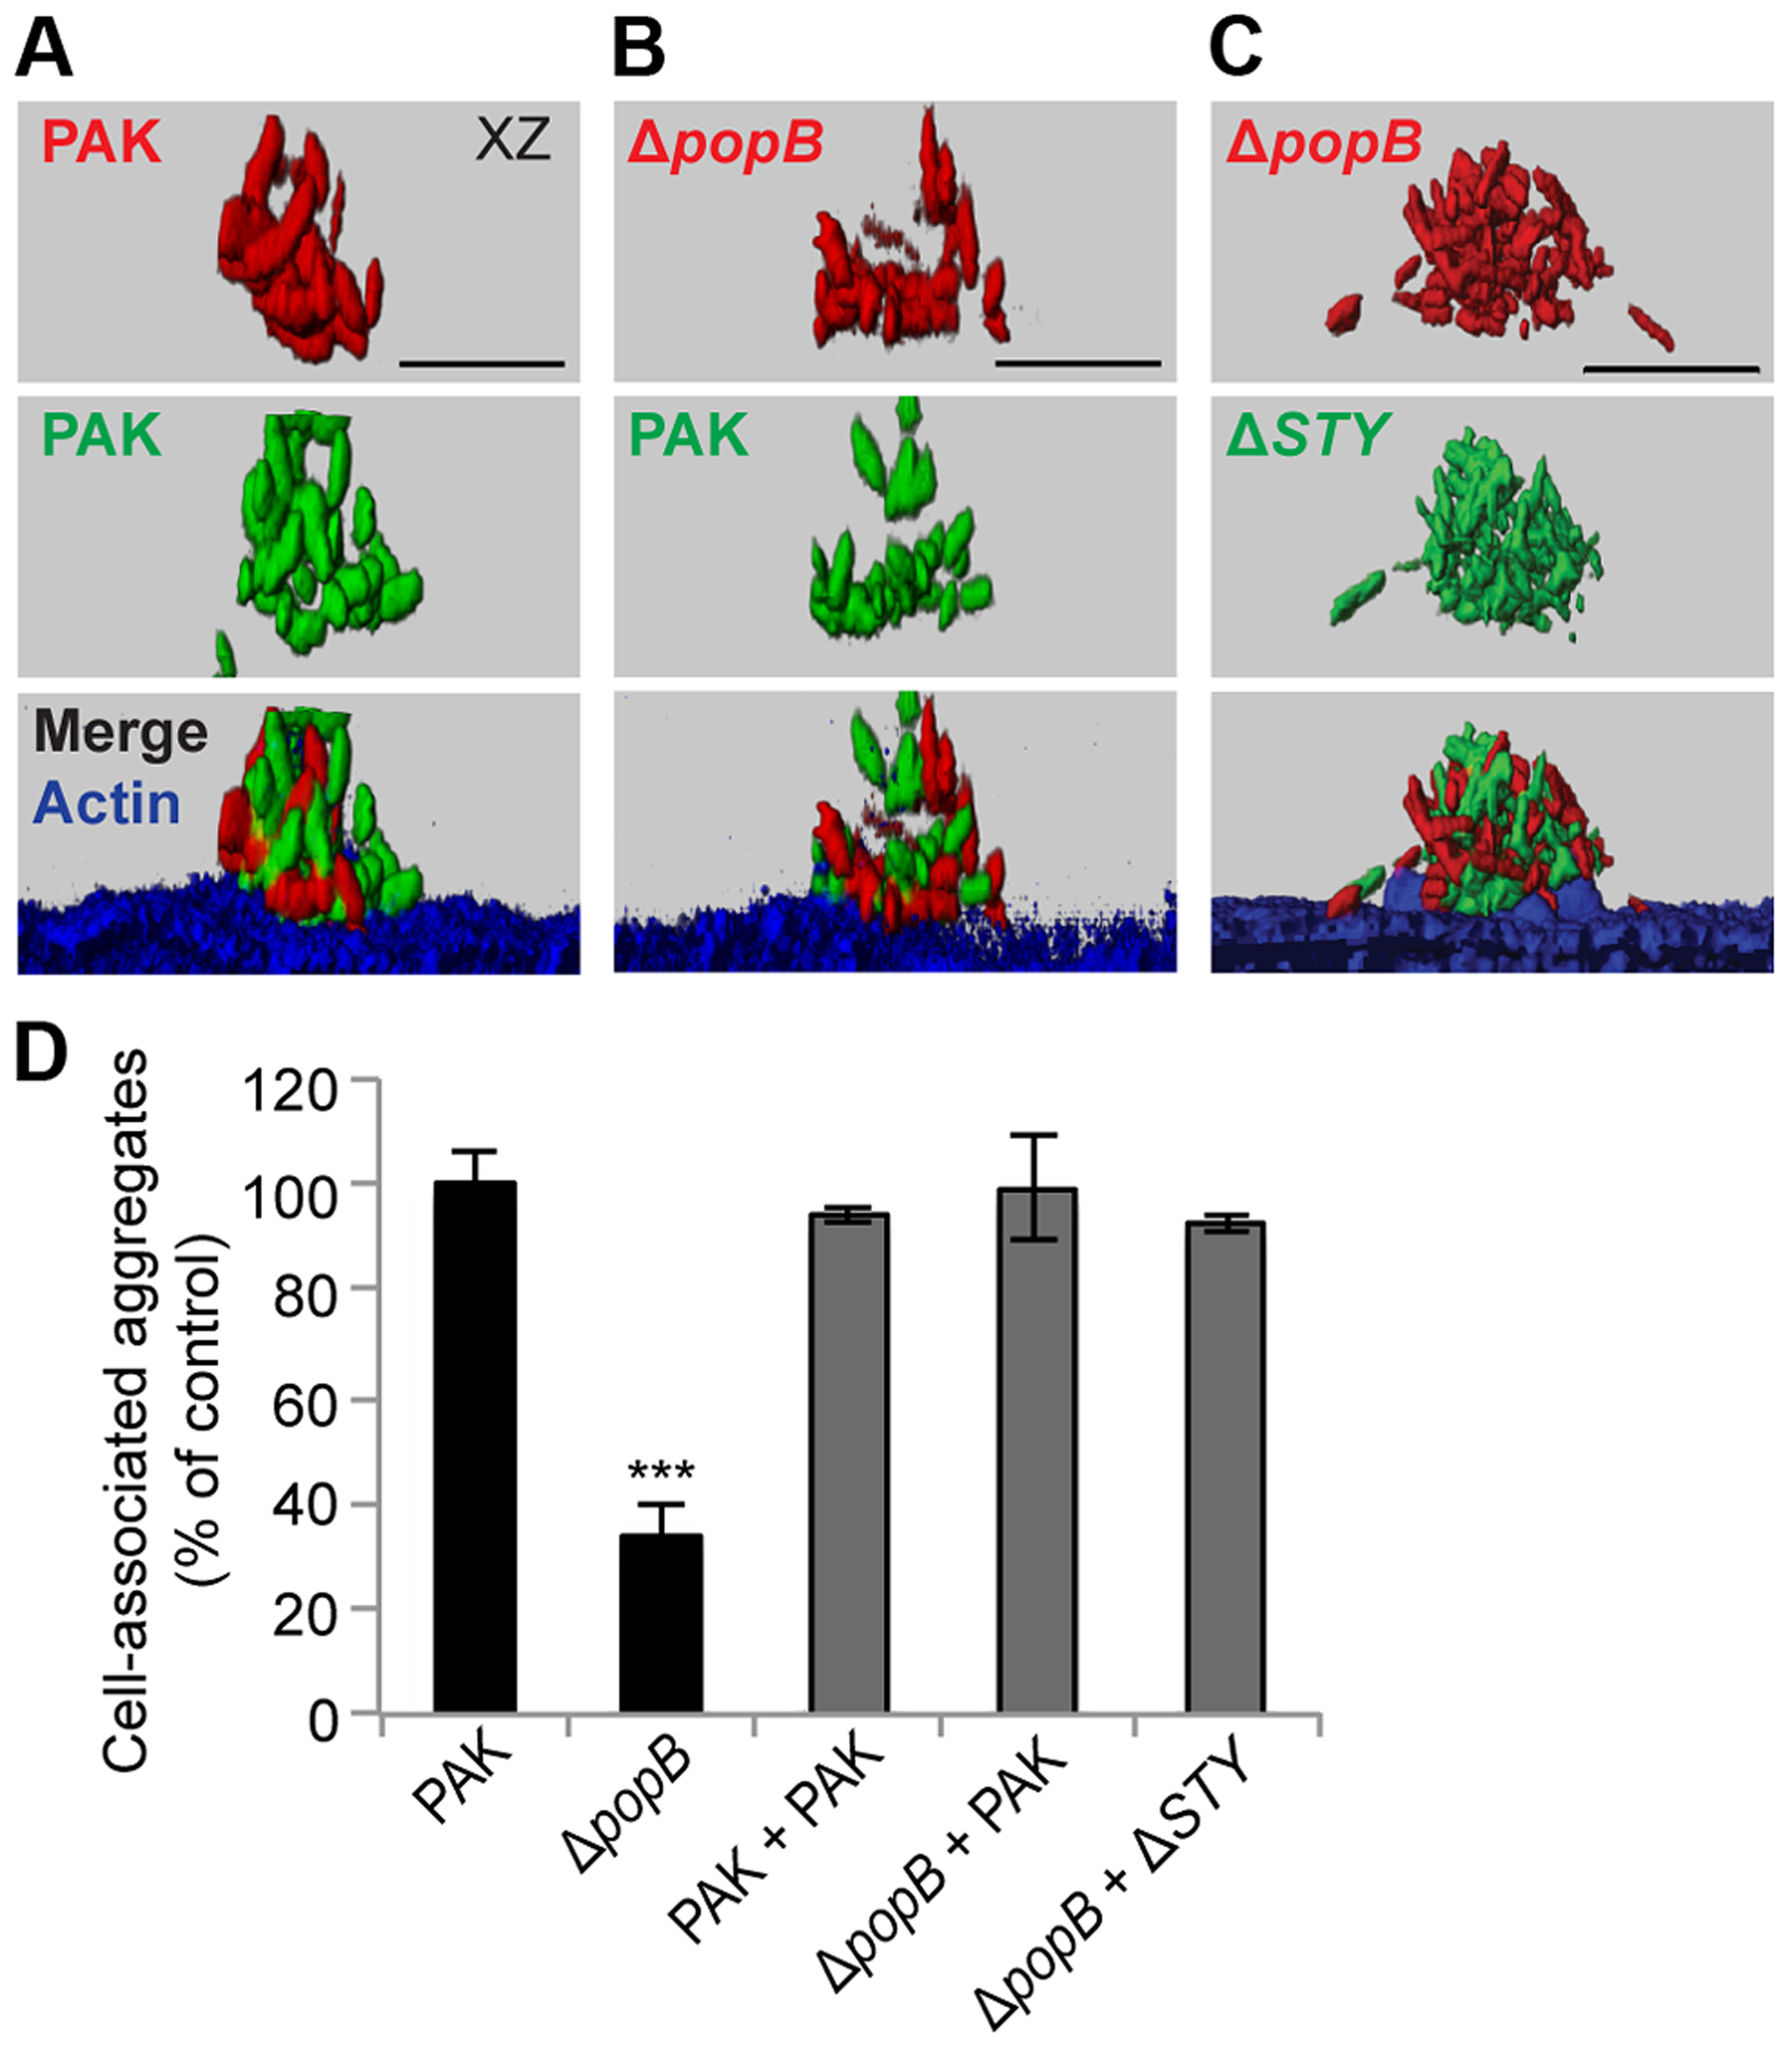 Co-infection with T3SS+ bacteria restores cell-associated aggregation in PAKΔ<i>popB</i>.